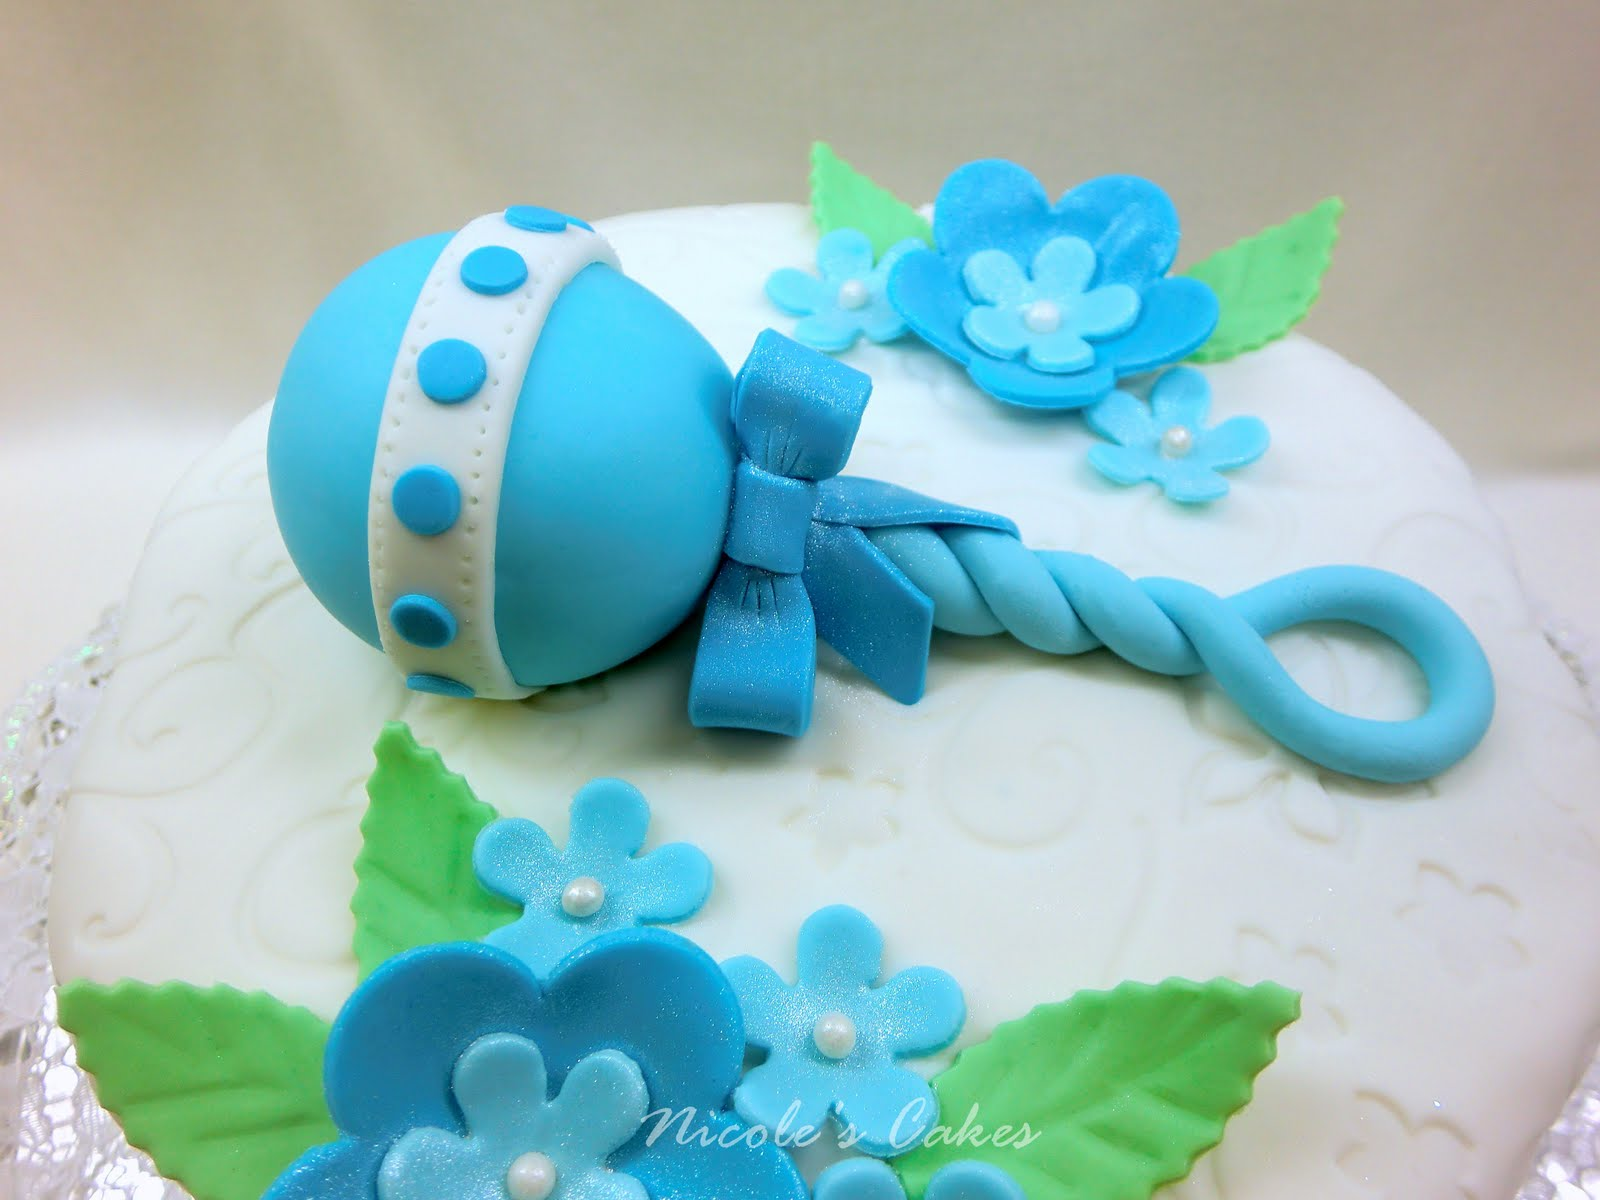 Confections Cakes & Creations Beautiful Blue Baby Shower Cake